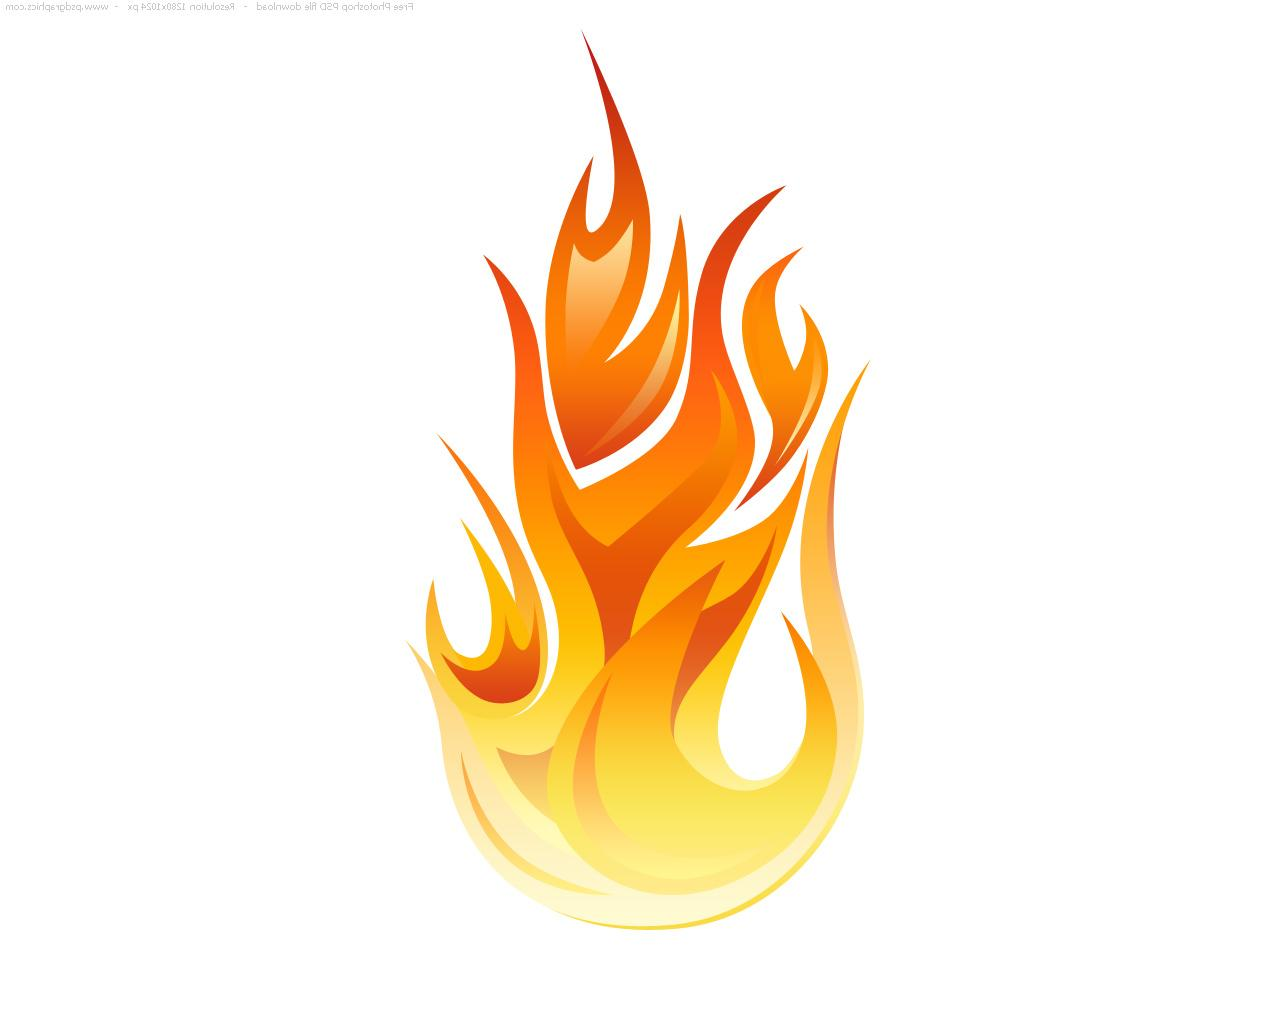 Flame fire clipart. Of free download best